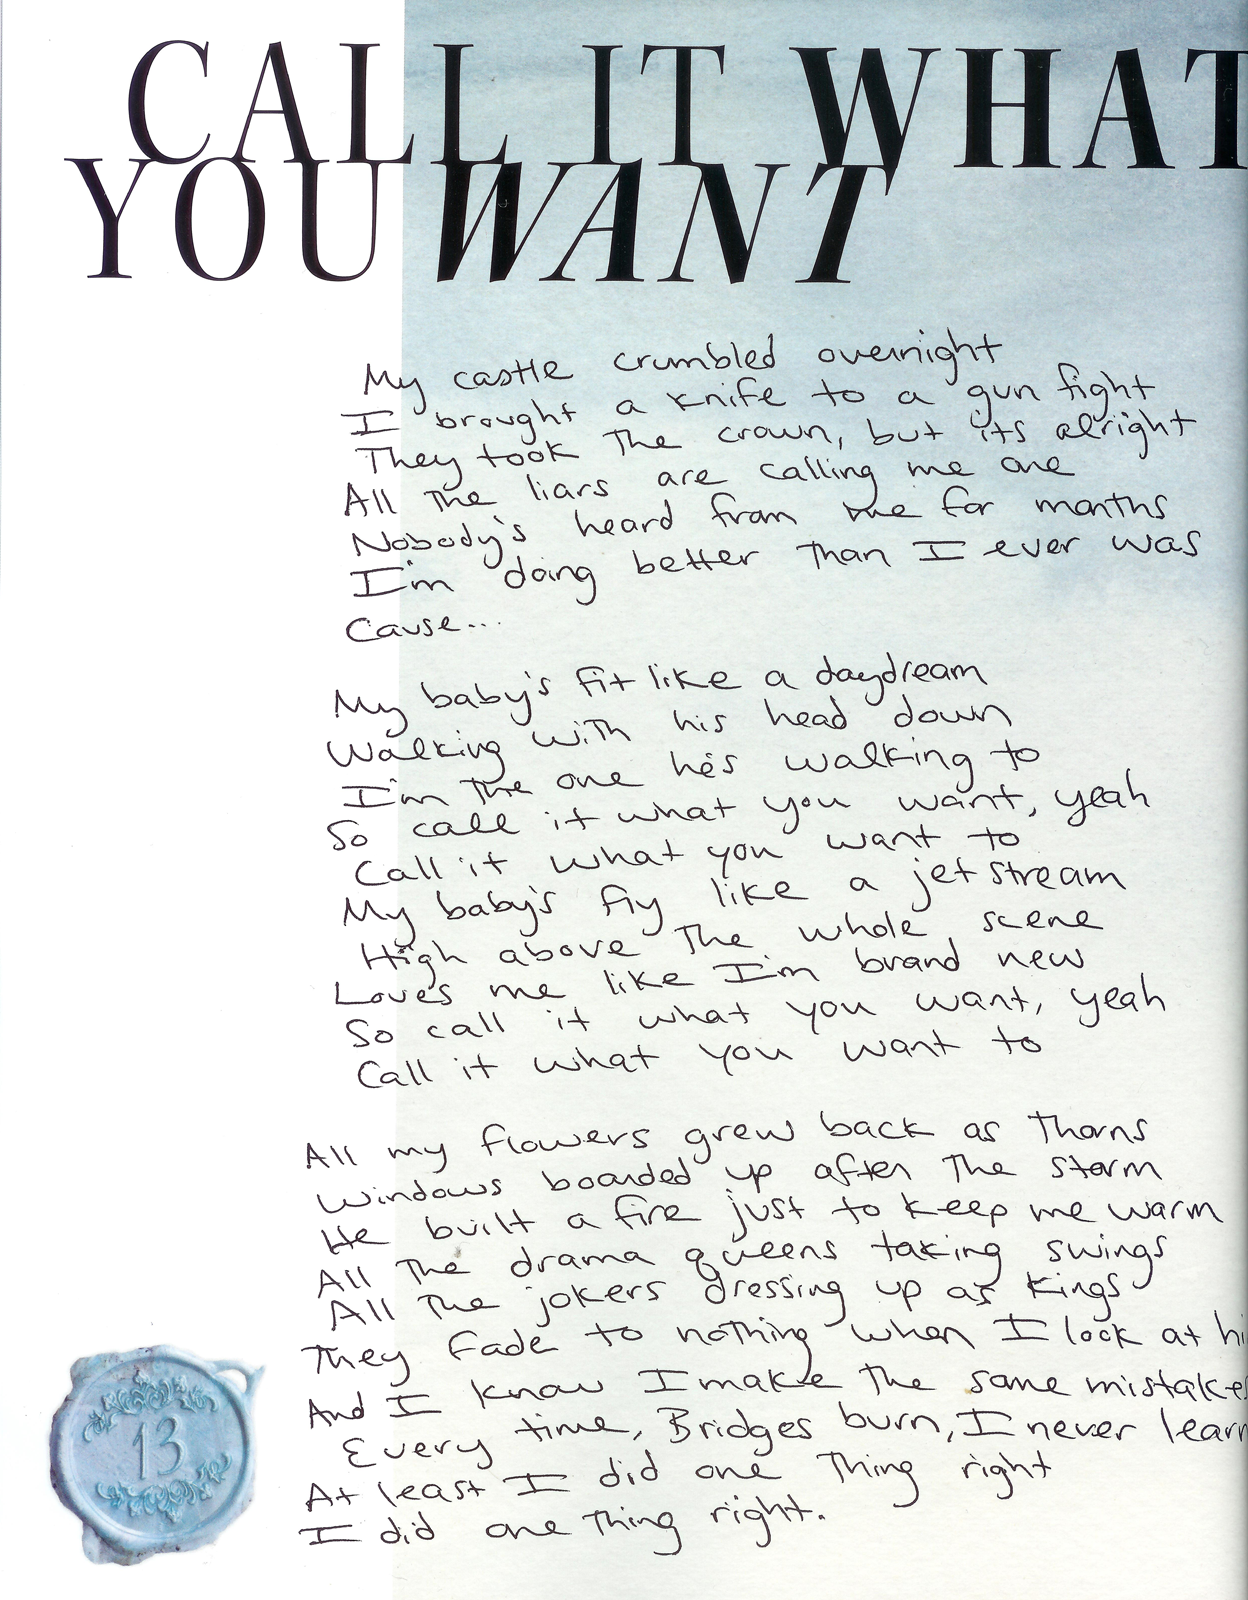 Tswiftdaily I Learned A Lot From Ethel Kennedy Tswiftly Handwritten Lyrics From Reputation Taylor Swift Lyrics Taylor Swift Song Lyrics Taylor Lyrics